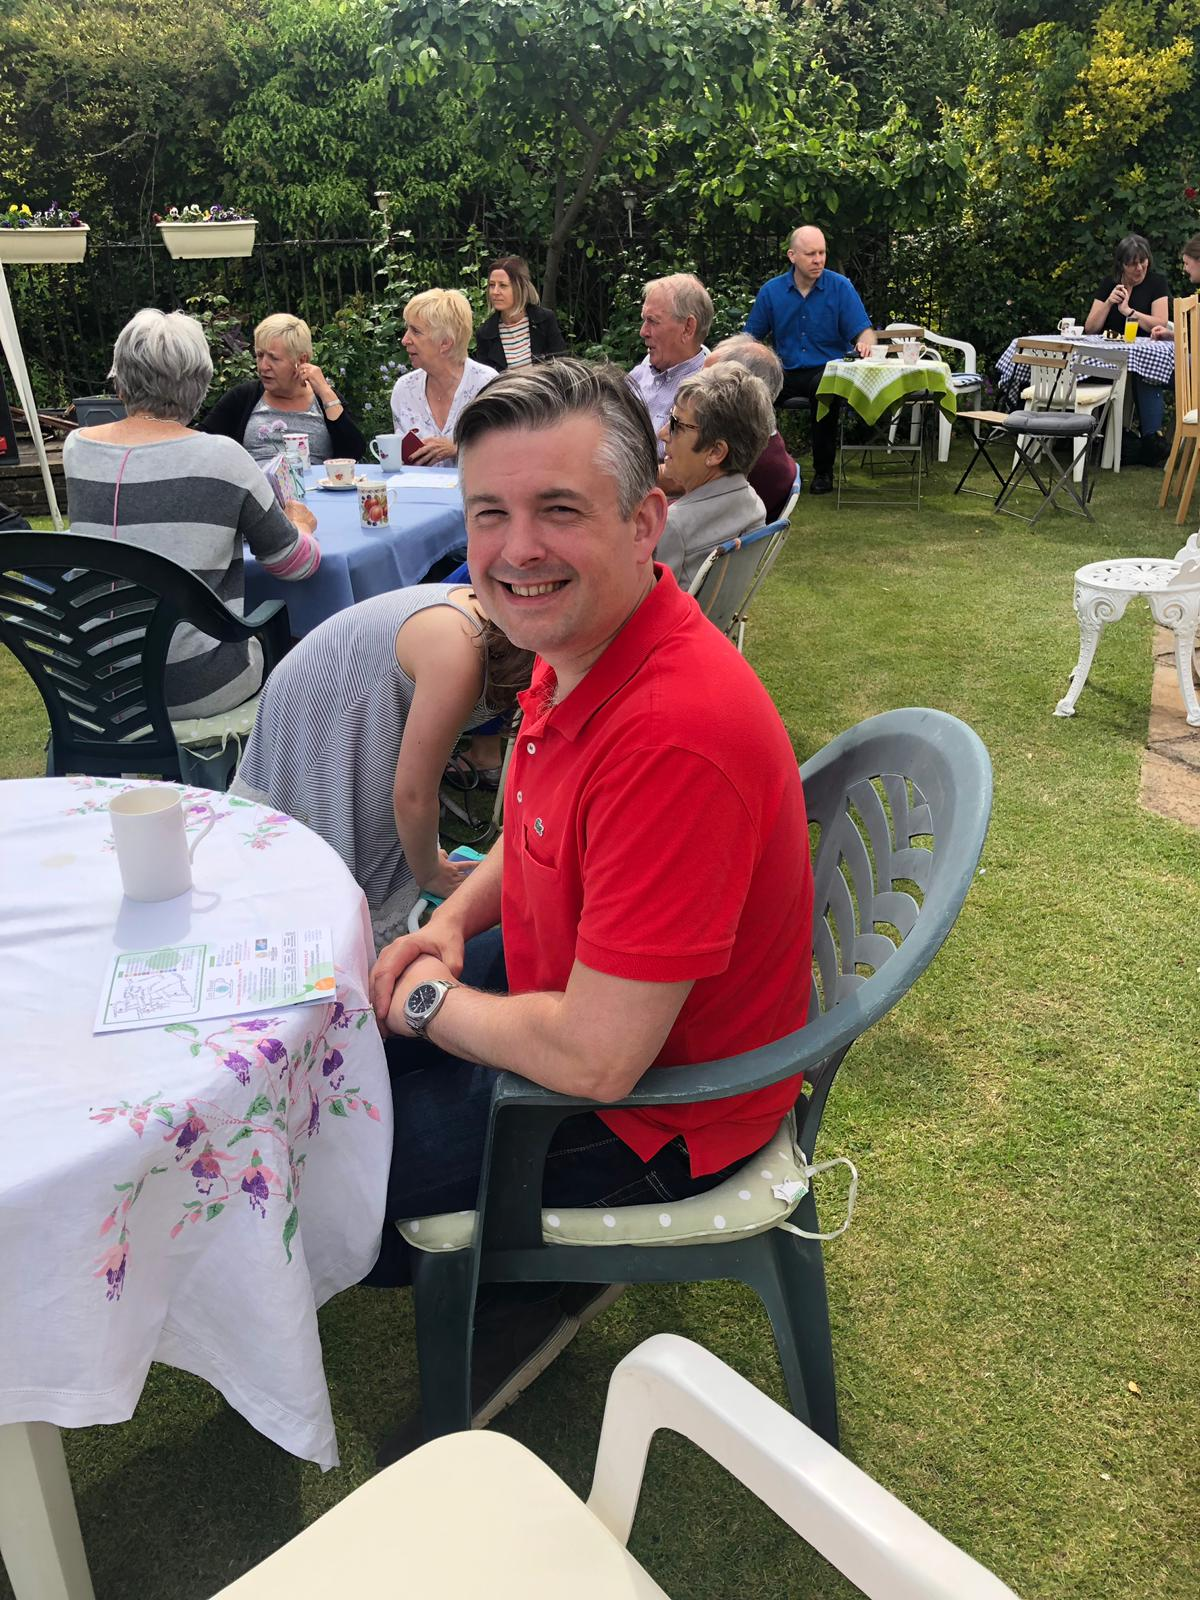 "Jon at the Art House Festival, Jon said: ""Lots of local fabulous art on display and our immense thanks to residents who have opened up their homes, all the volunteers and especially everyone selling cakes again for charity at 'Tart House'"" - Saturday June 8 2019"